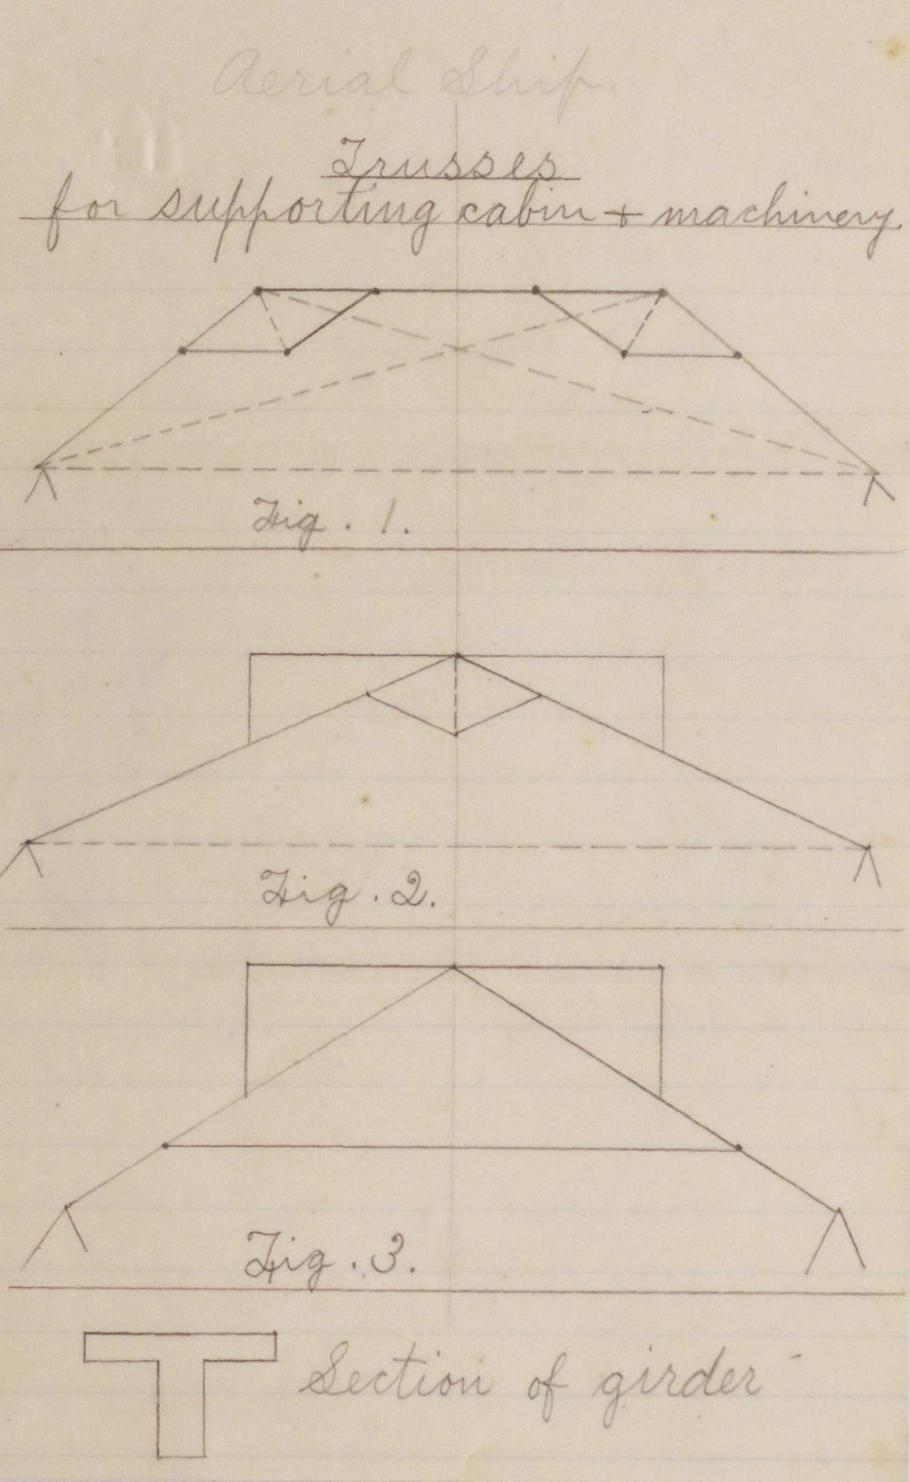 Cursive Text: Aerial Ship, Trusses Support Cabinet and Machinery, three; letter T shape labelled section of girder line drawings labeled Fig. 1, 2, 3,